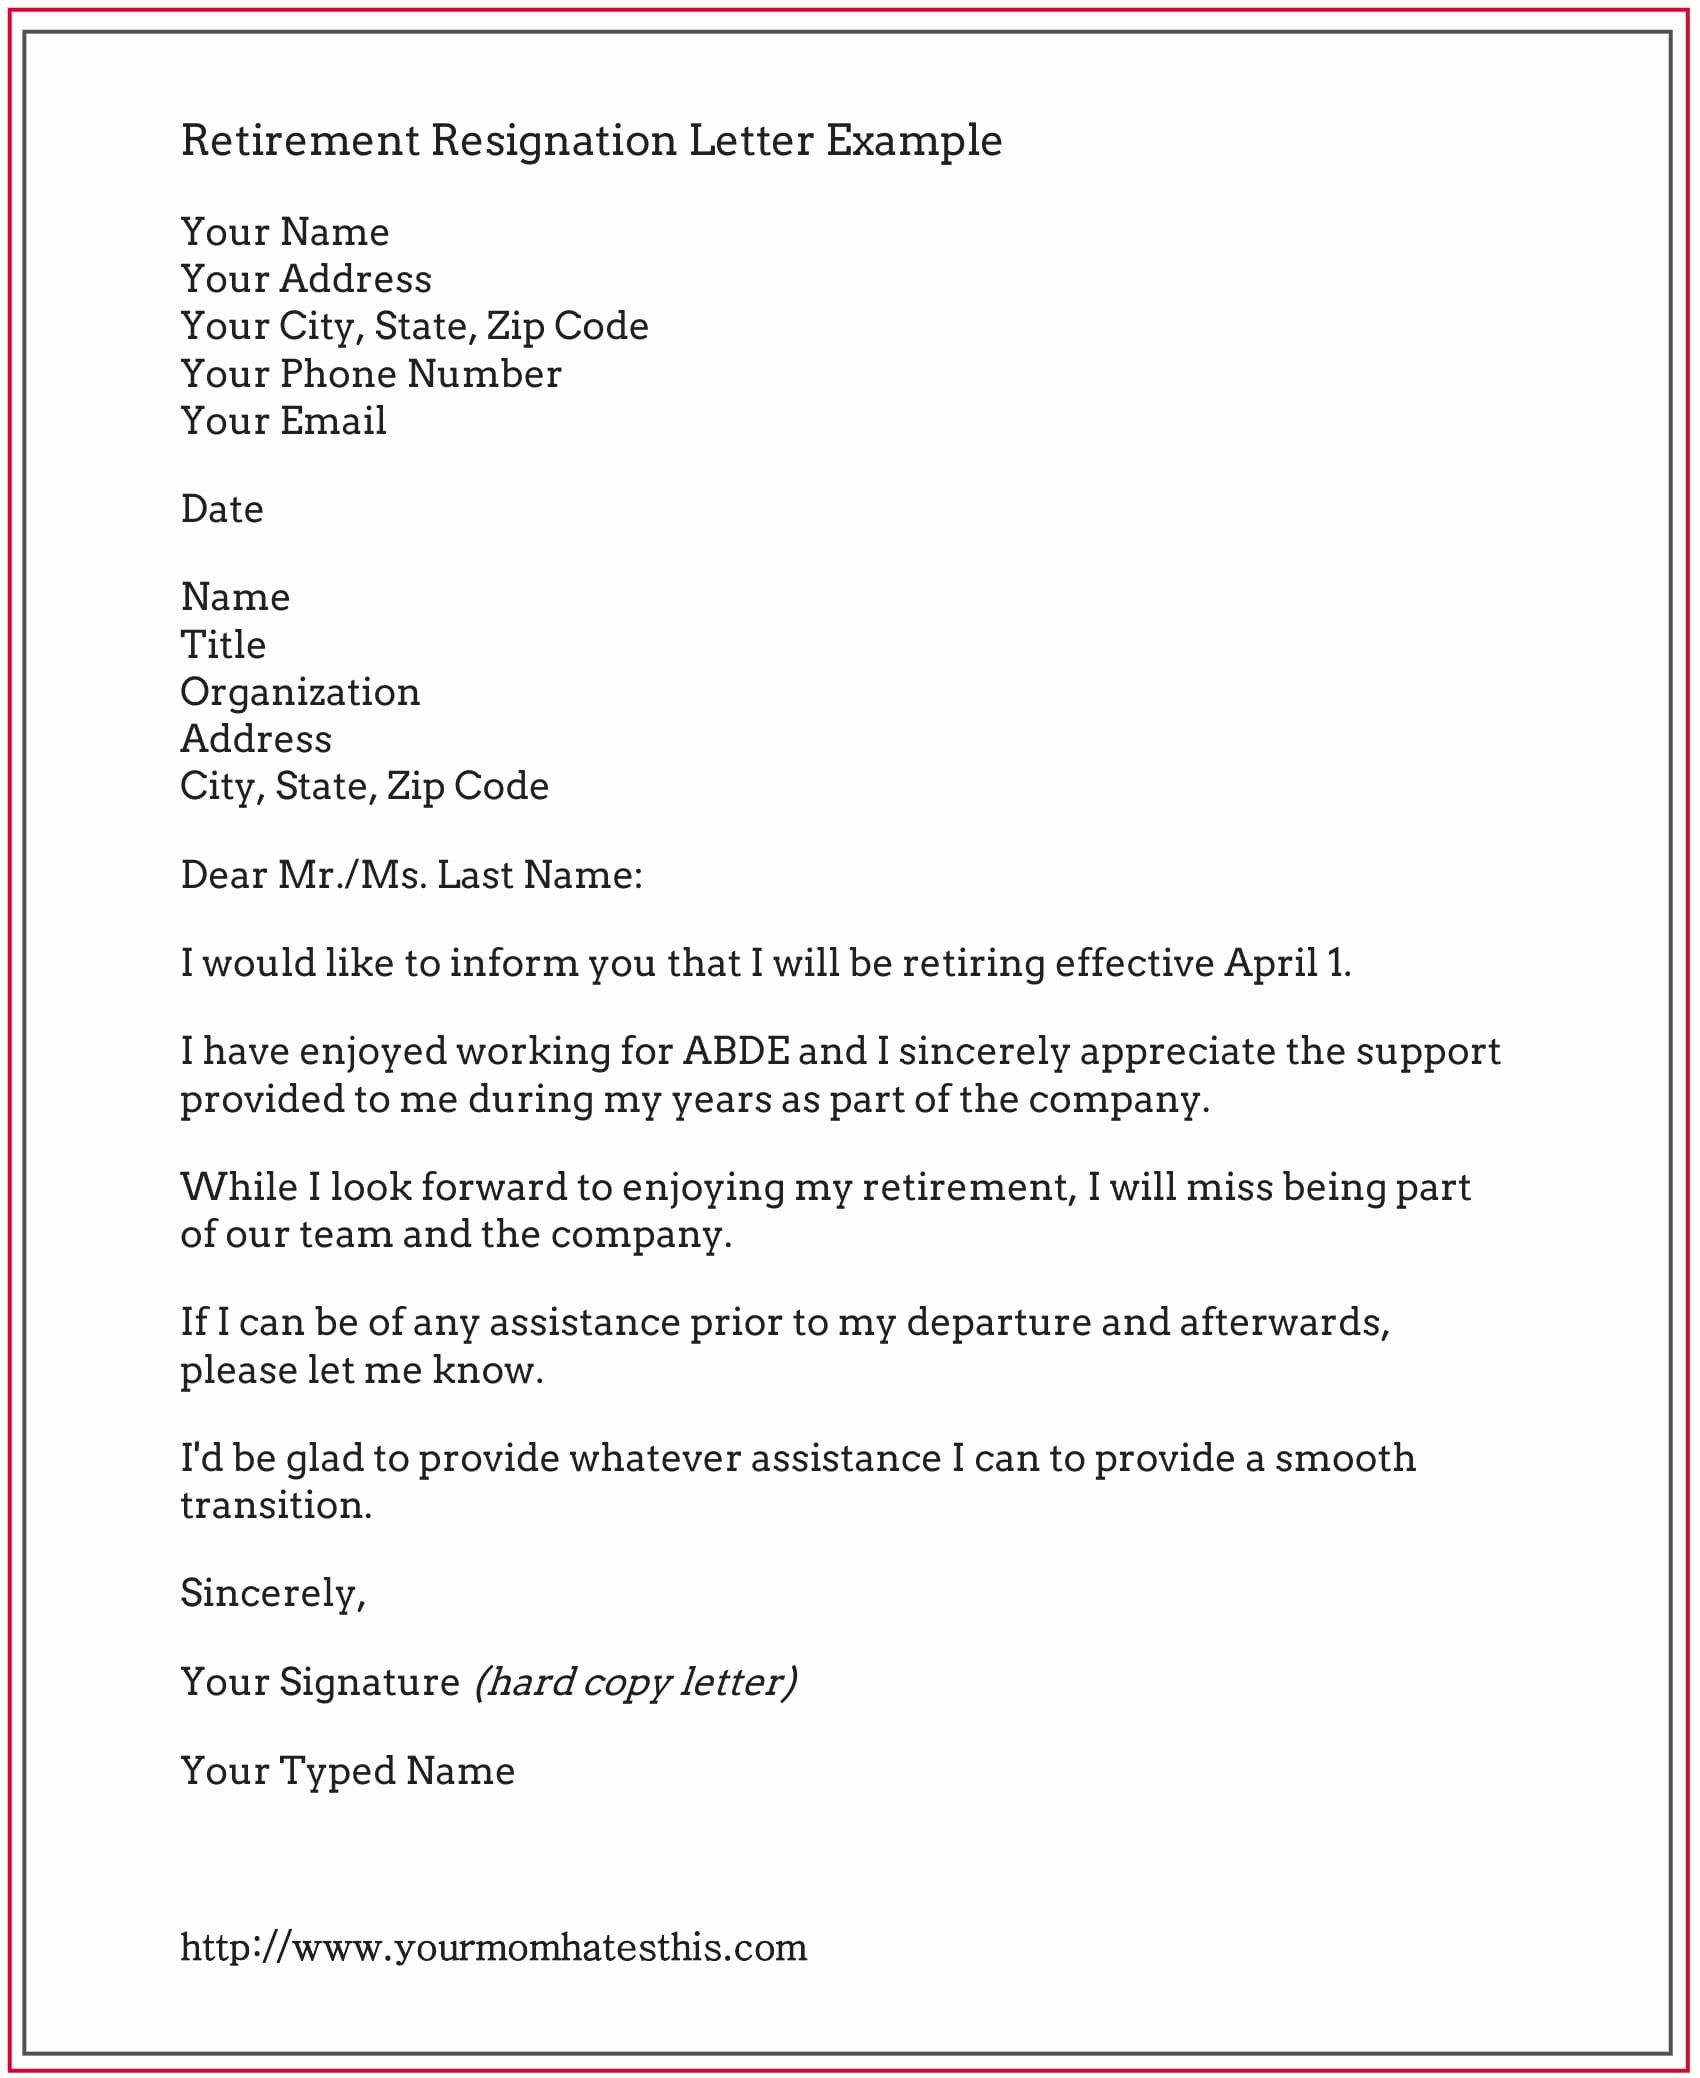 Retirement Resignation Letter Example Luxury Dos and Don'ts for A Resignation Letter